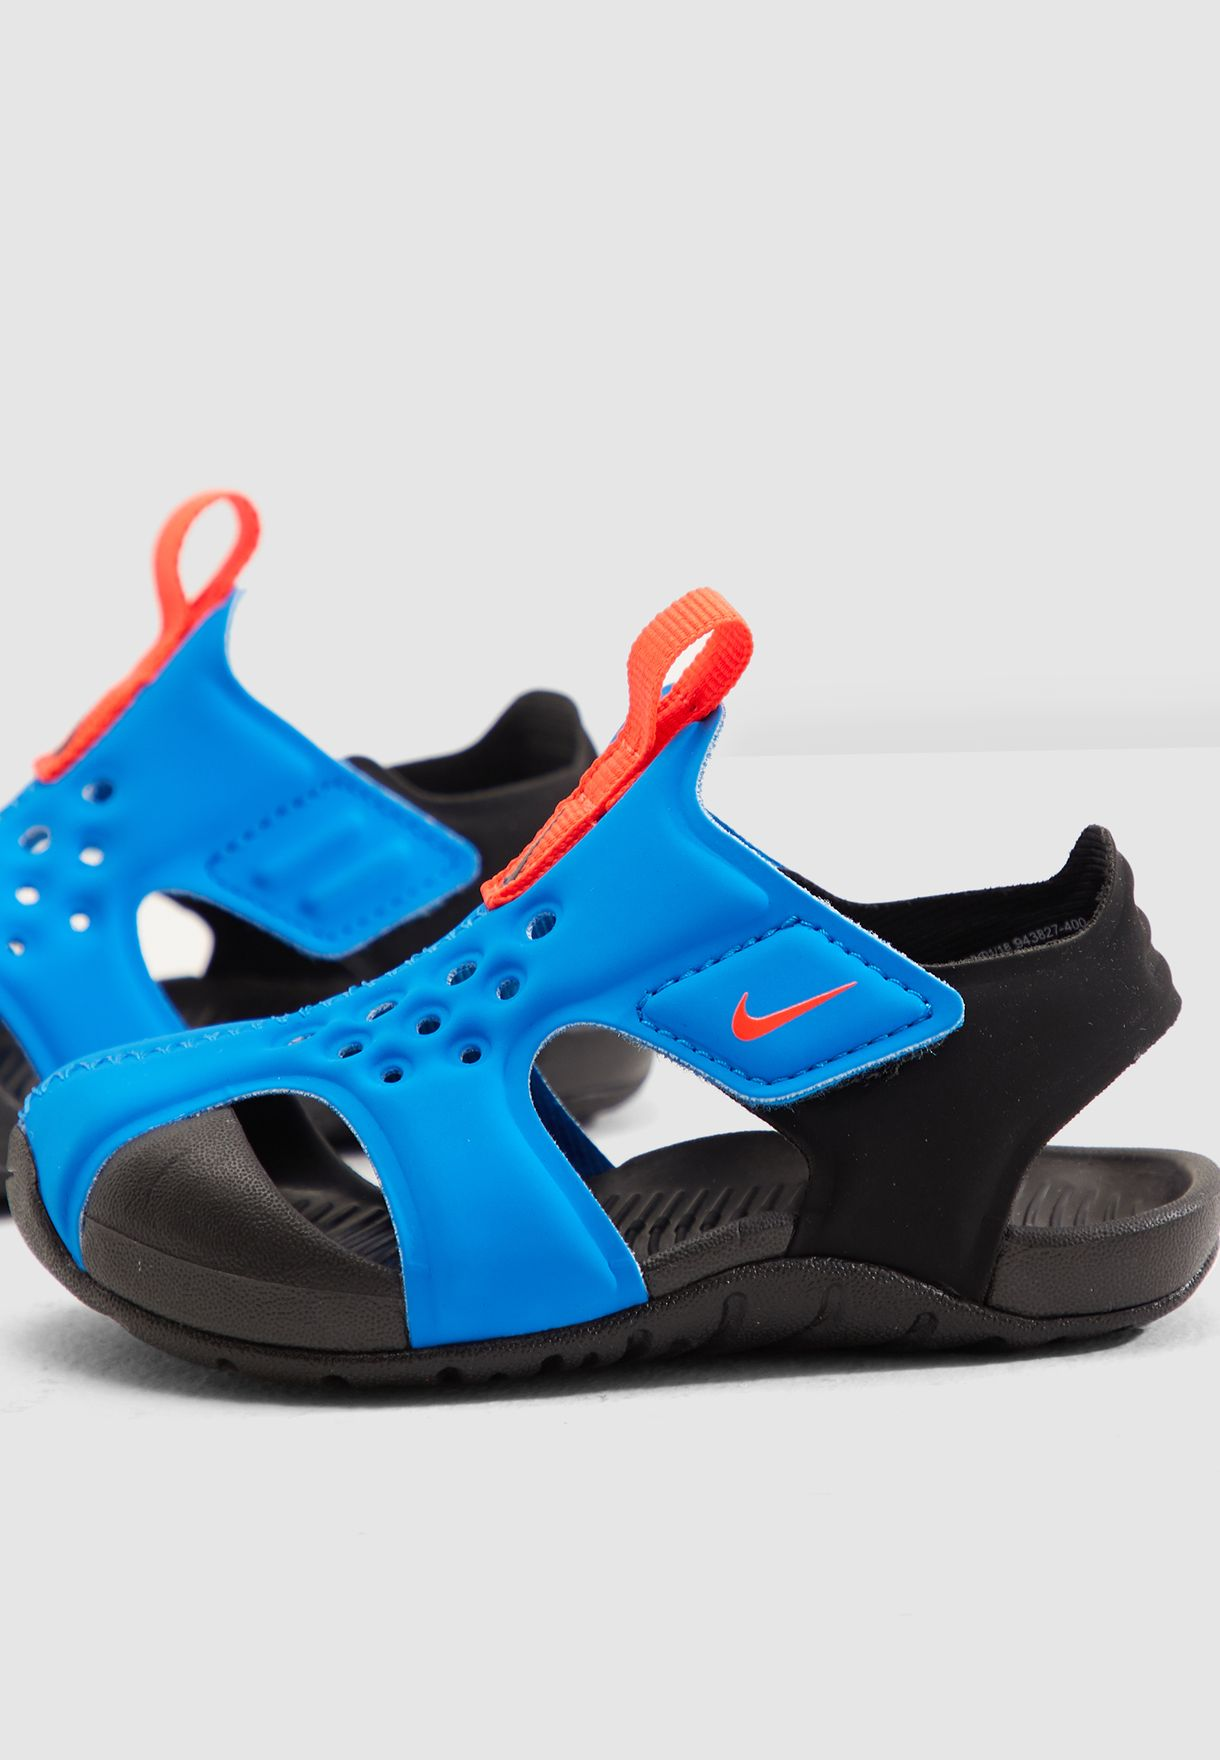 aafffa0537dc10 Shop Nike blue Infant Sunray Protect 2 943827-400 for Kids in UAE ...